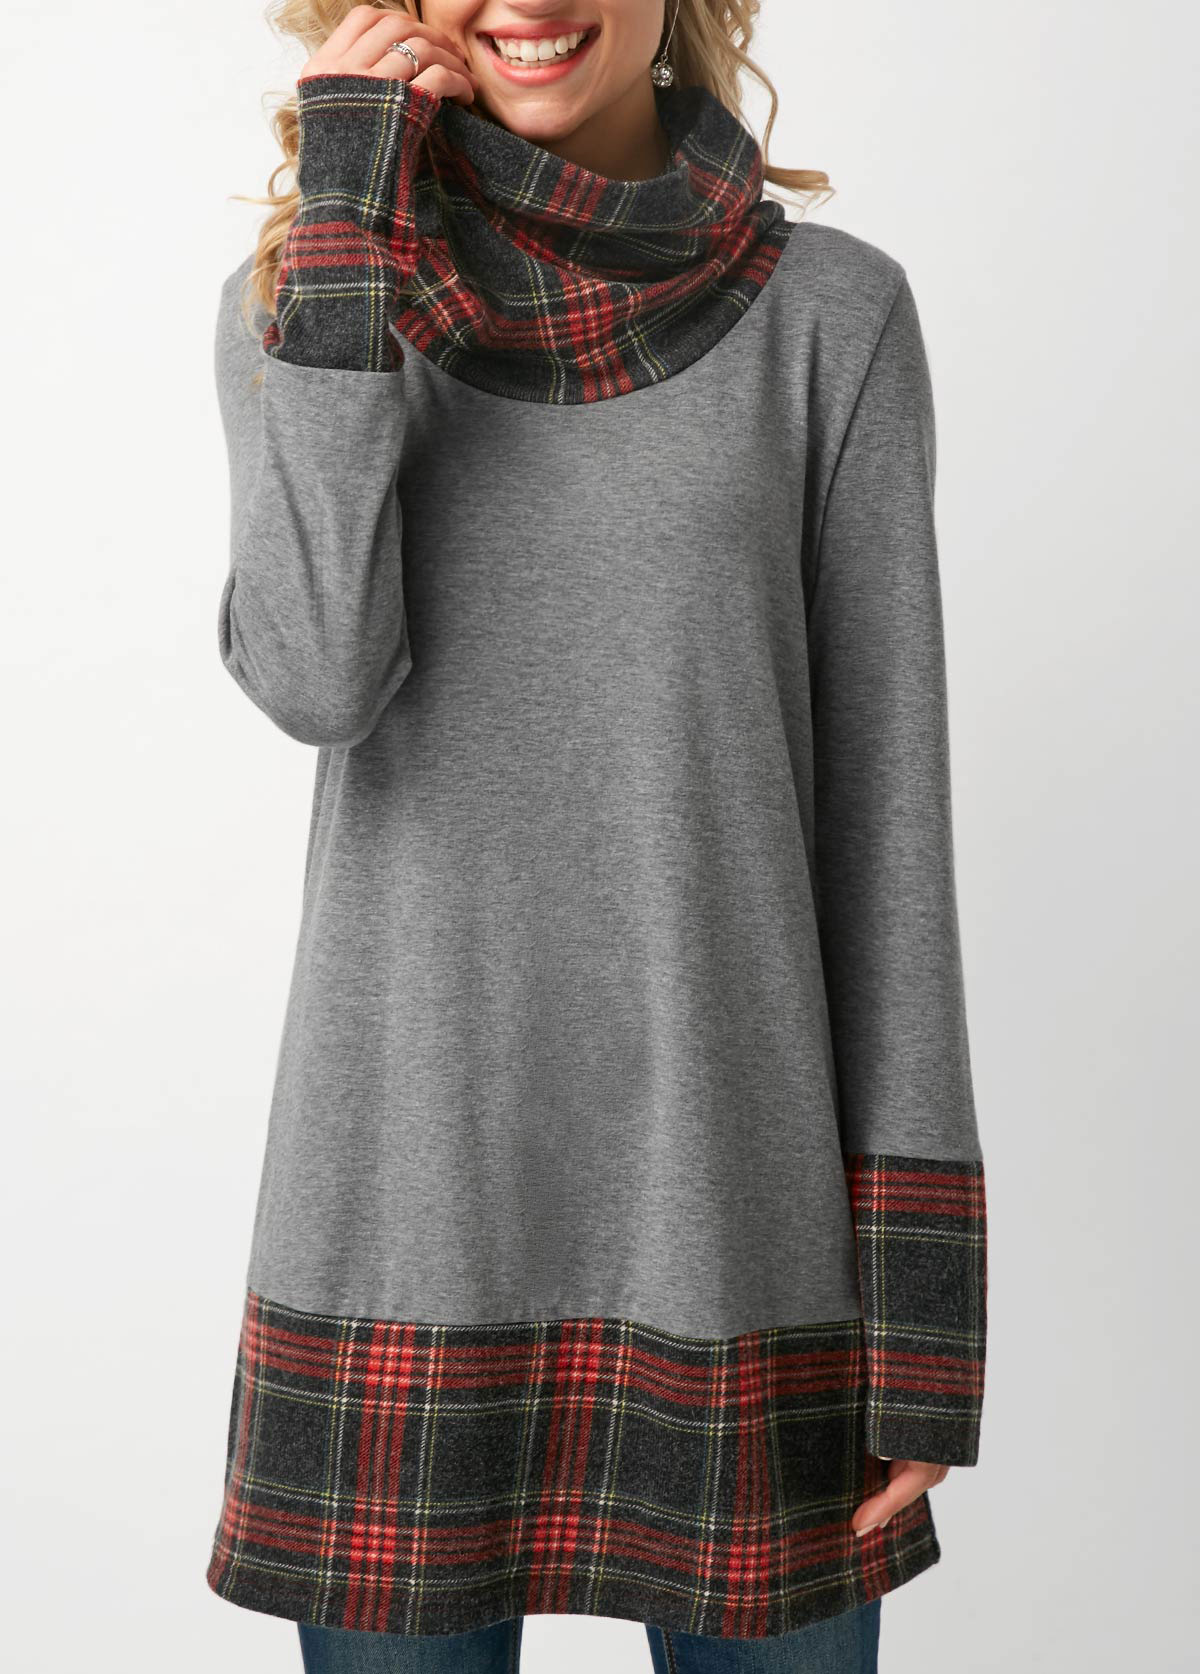 ROTITA Plaid Print Long Sleeve Cowl Neck T Shirt